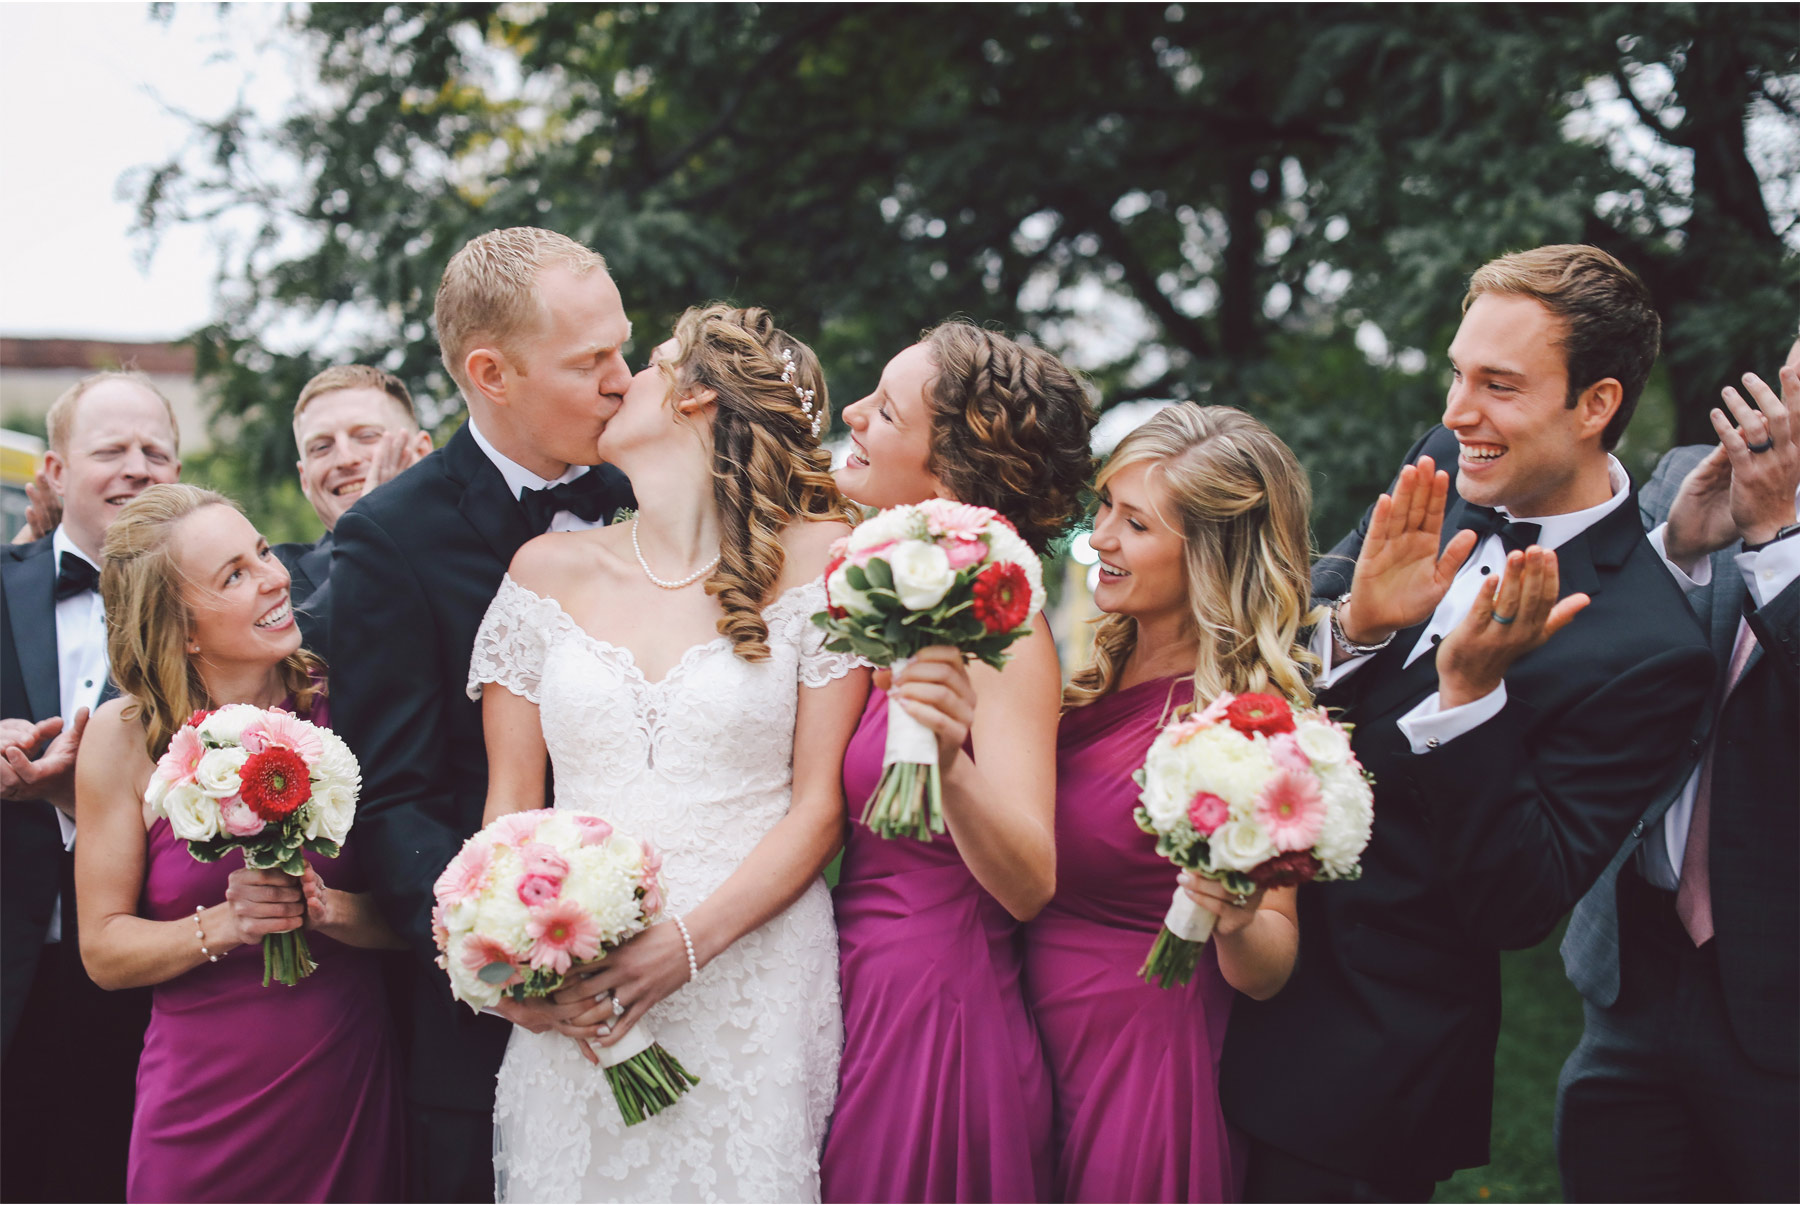 09-Minneapolis-Minnesota-Wedding-Photography-by-Vick-Photography-Semple-Mansion-Groups-Wedding-Party-Danielle-and-Chance.jpg